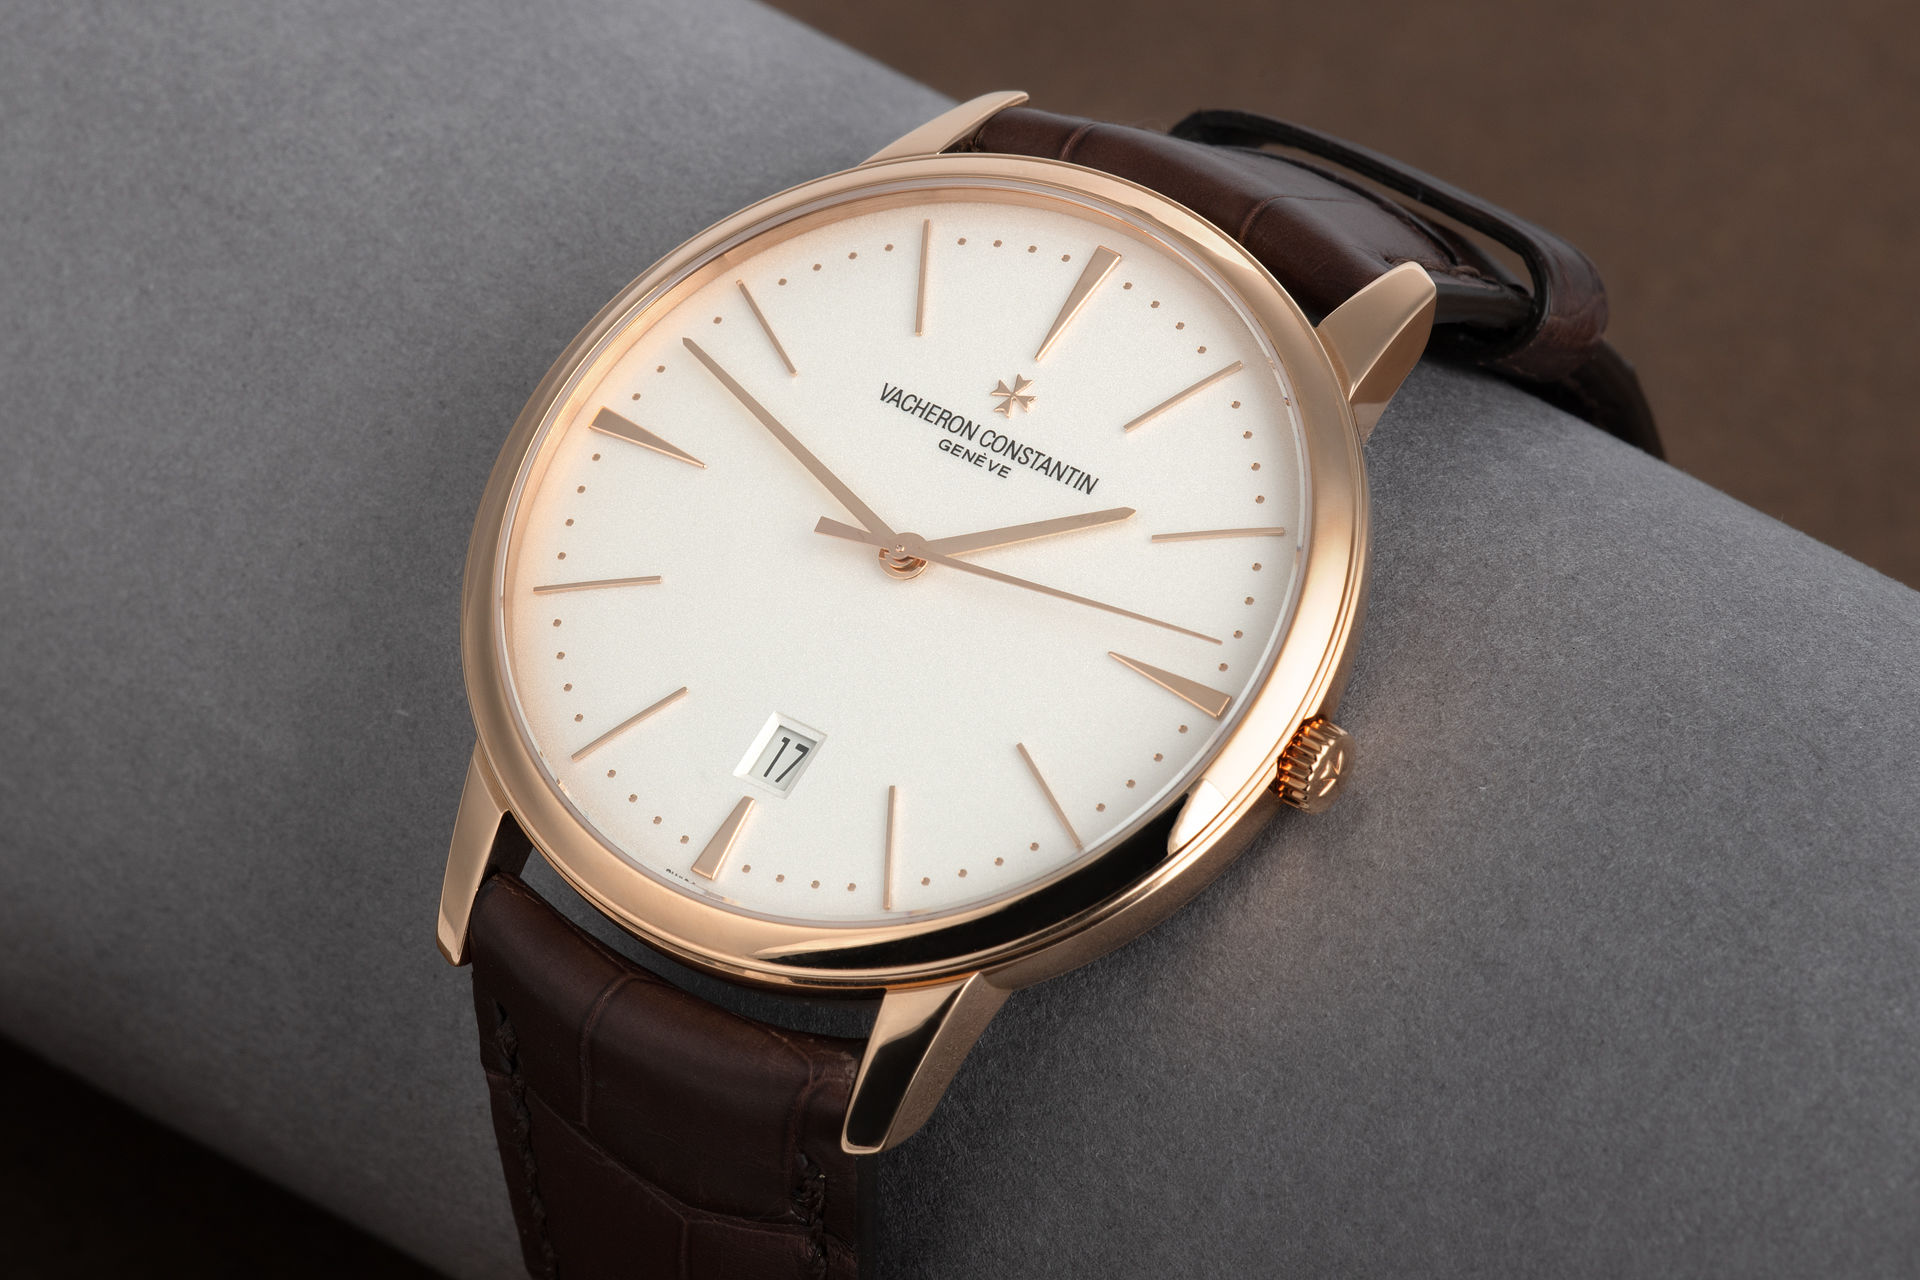 ref 85180/000R-9248 | 40mm 'Full Set' | Vacheron Constantin Patrimony